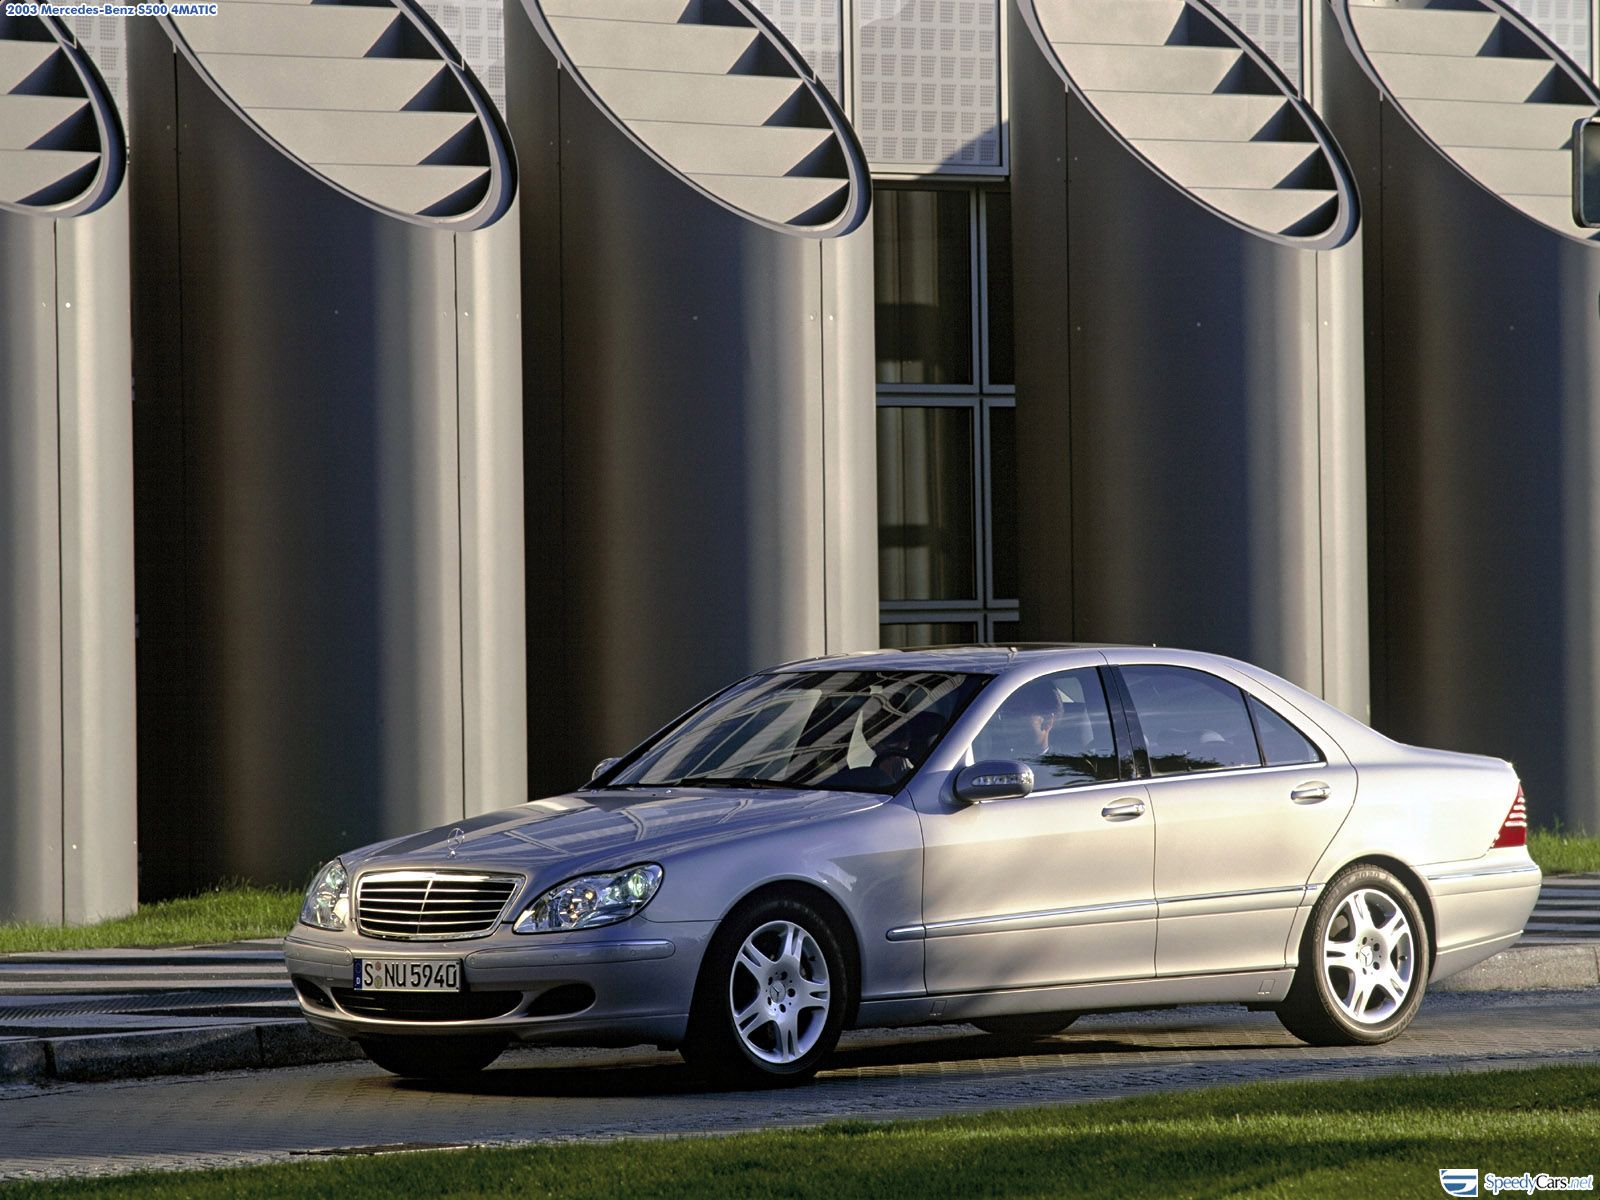 mercedes benz s class w220 photos photogallery with 18 pics. Black Bedroom Furniture Sets. Home Design Ideas